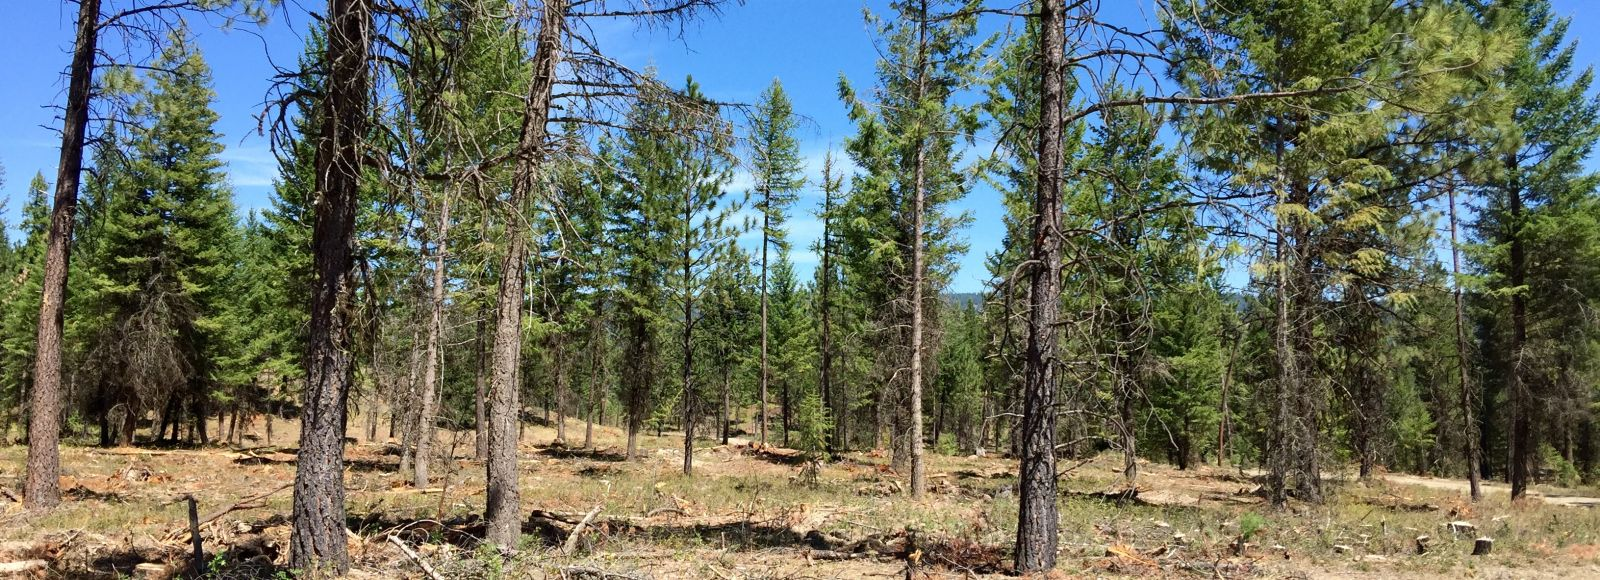 dry looking forest with a bright blue sky